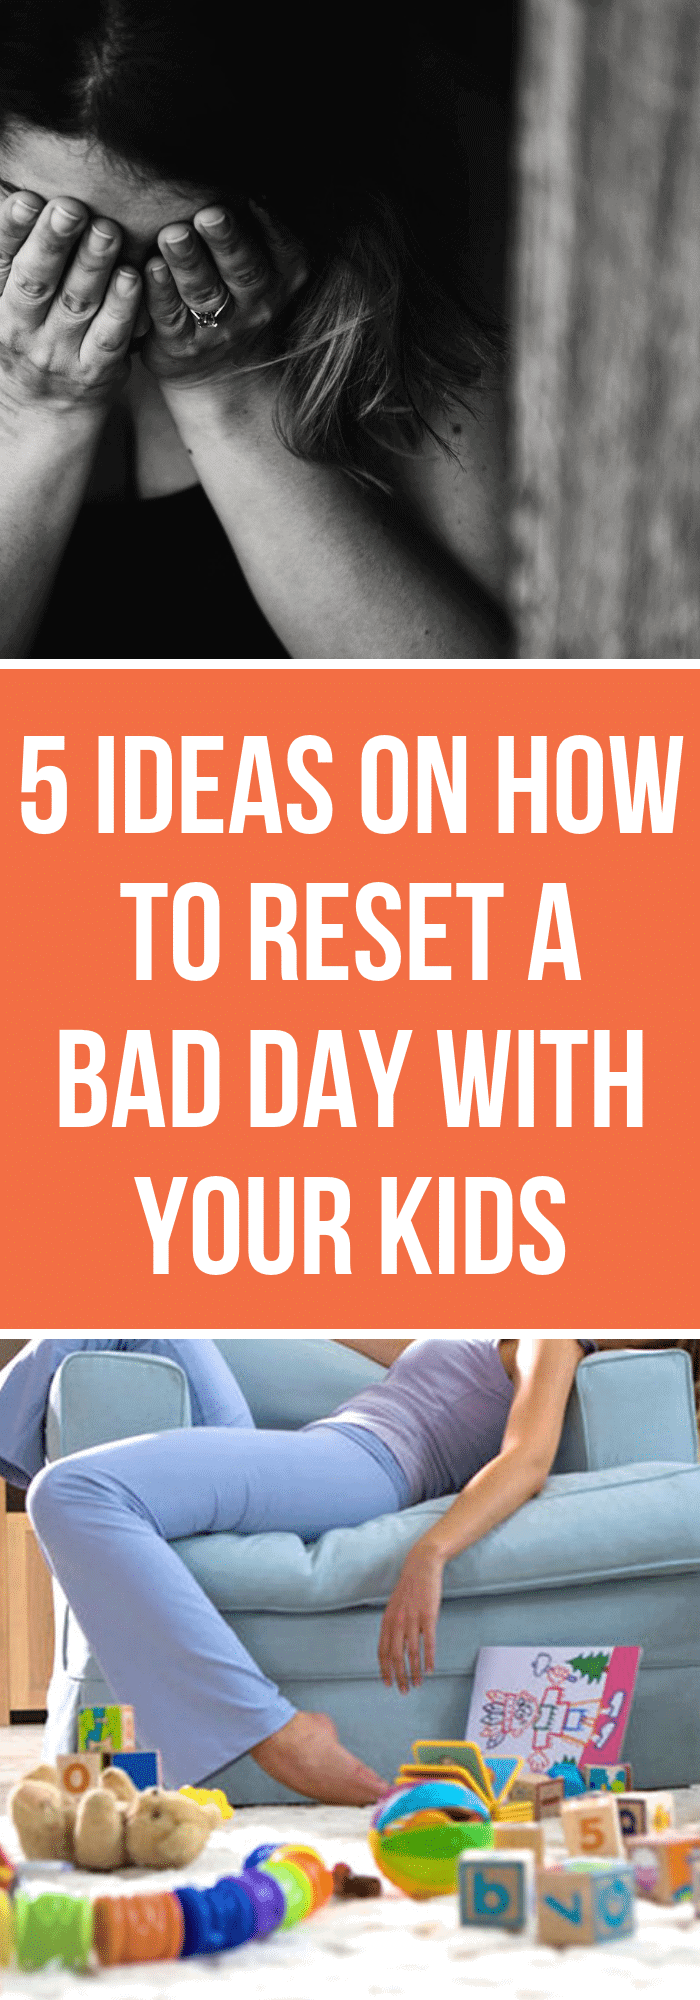 5 Ideas on How to Reset a Bad Day With Your Kids